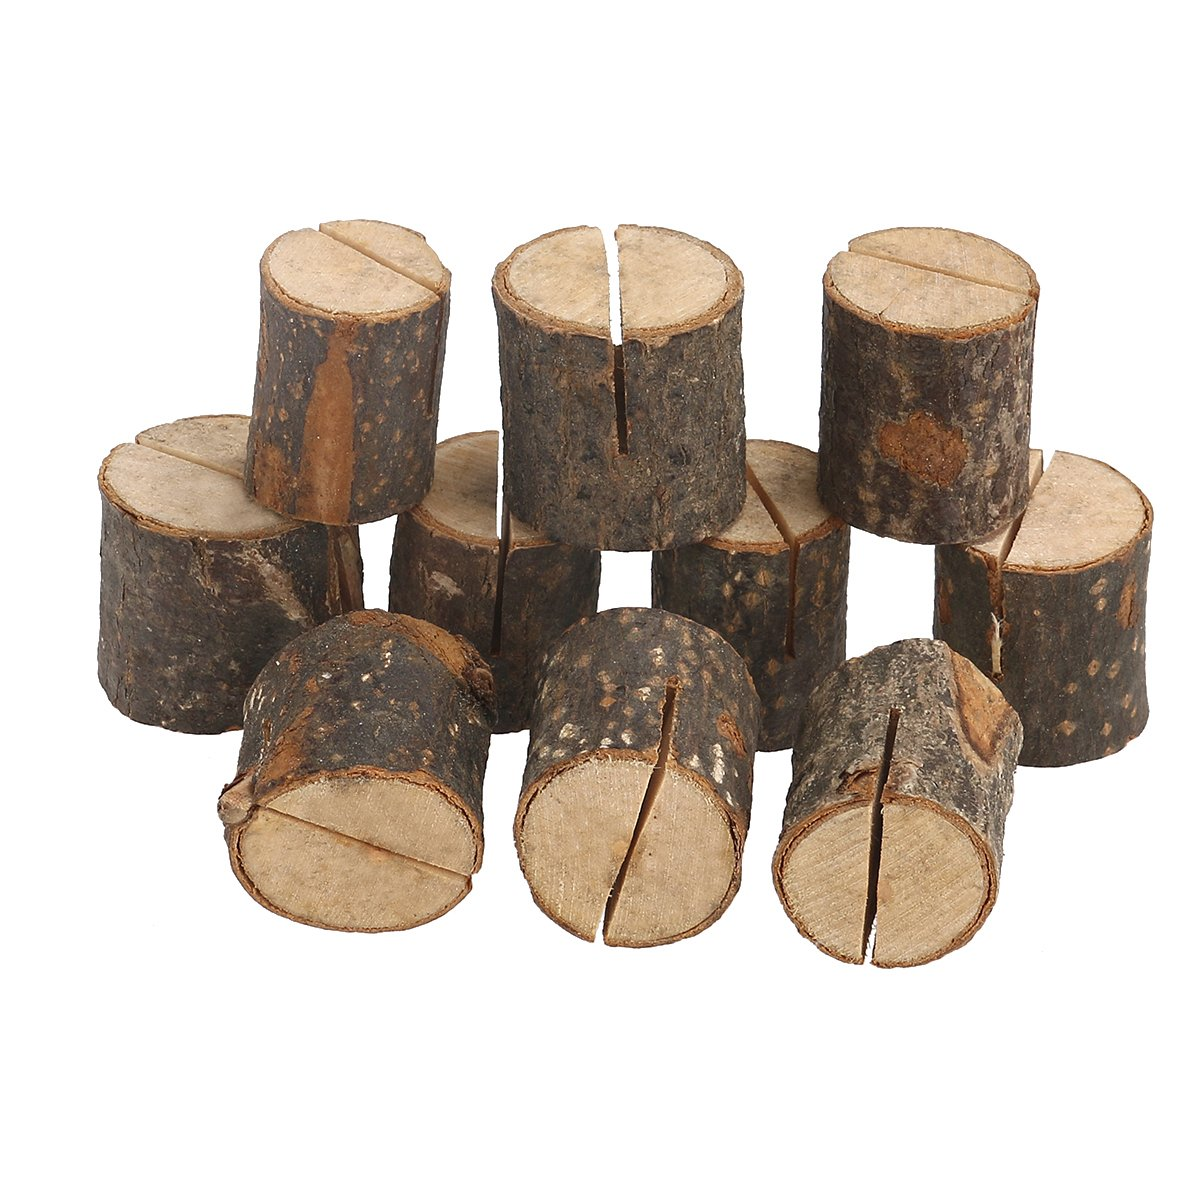 OULII Wedding Place Wooden Card Holders Table Number Stands for Home Party Decorations Pack of 10 by OULII